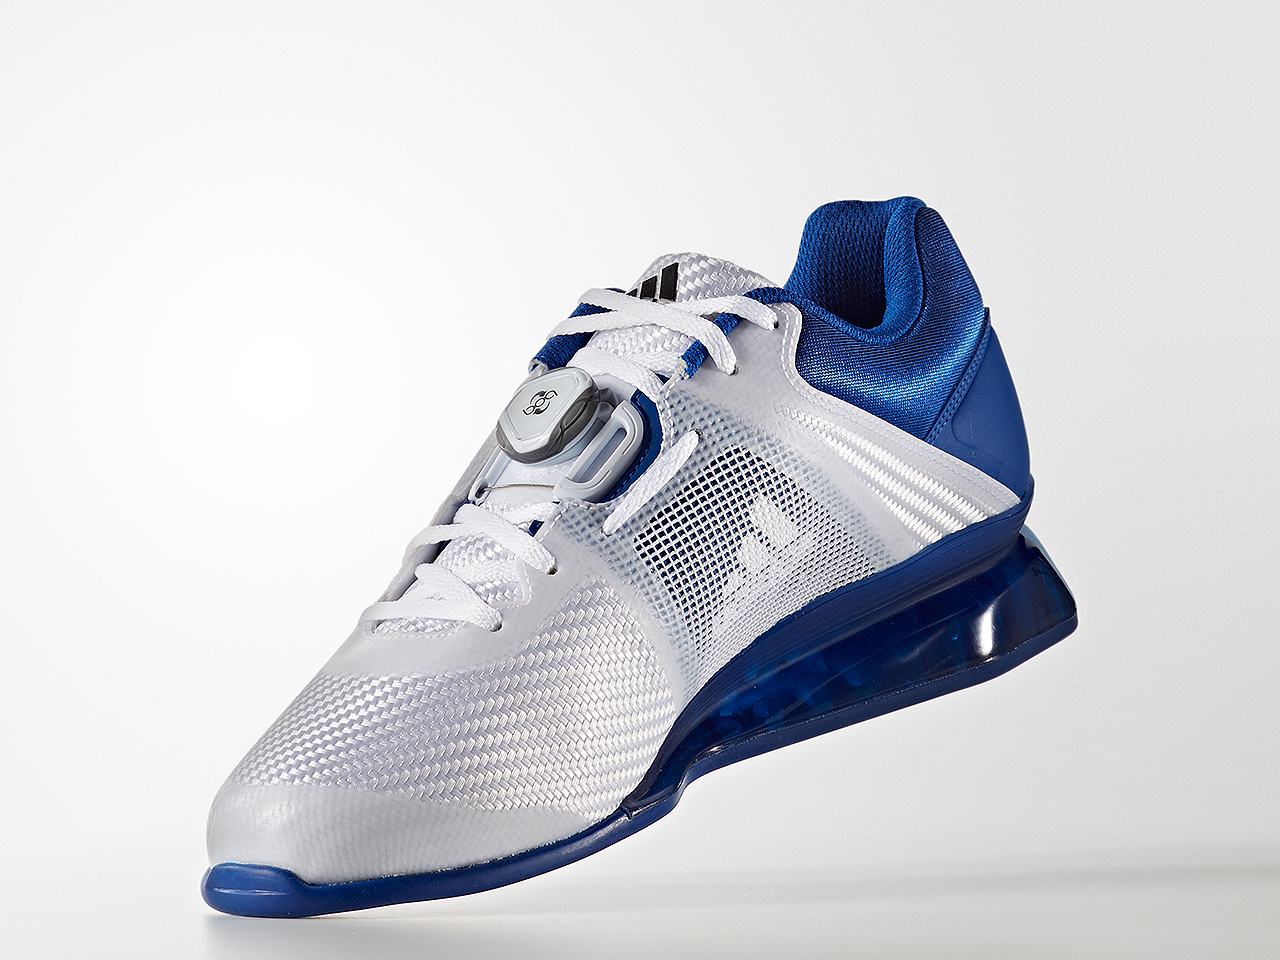 buy popular 529a0 fb9ce Heres a Close Look at Adidas Leistung 16.II and Crazy Power Training Shoes